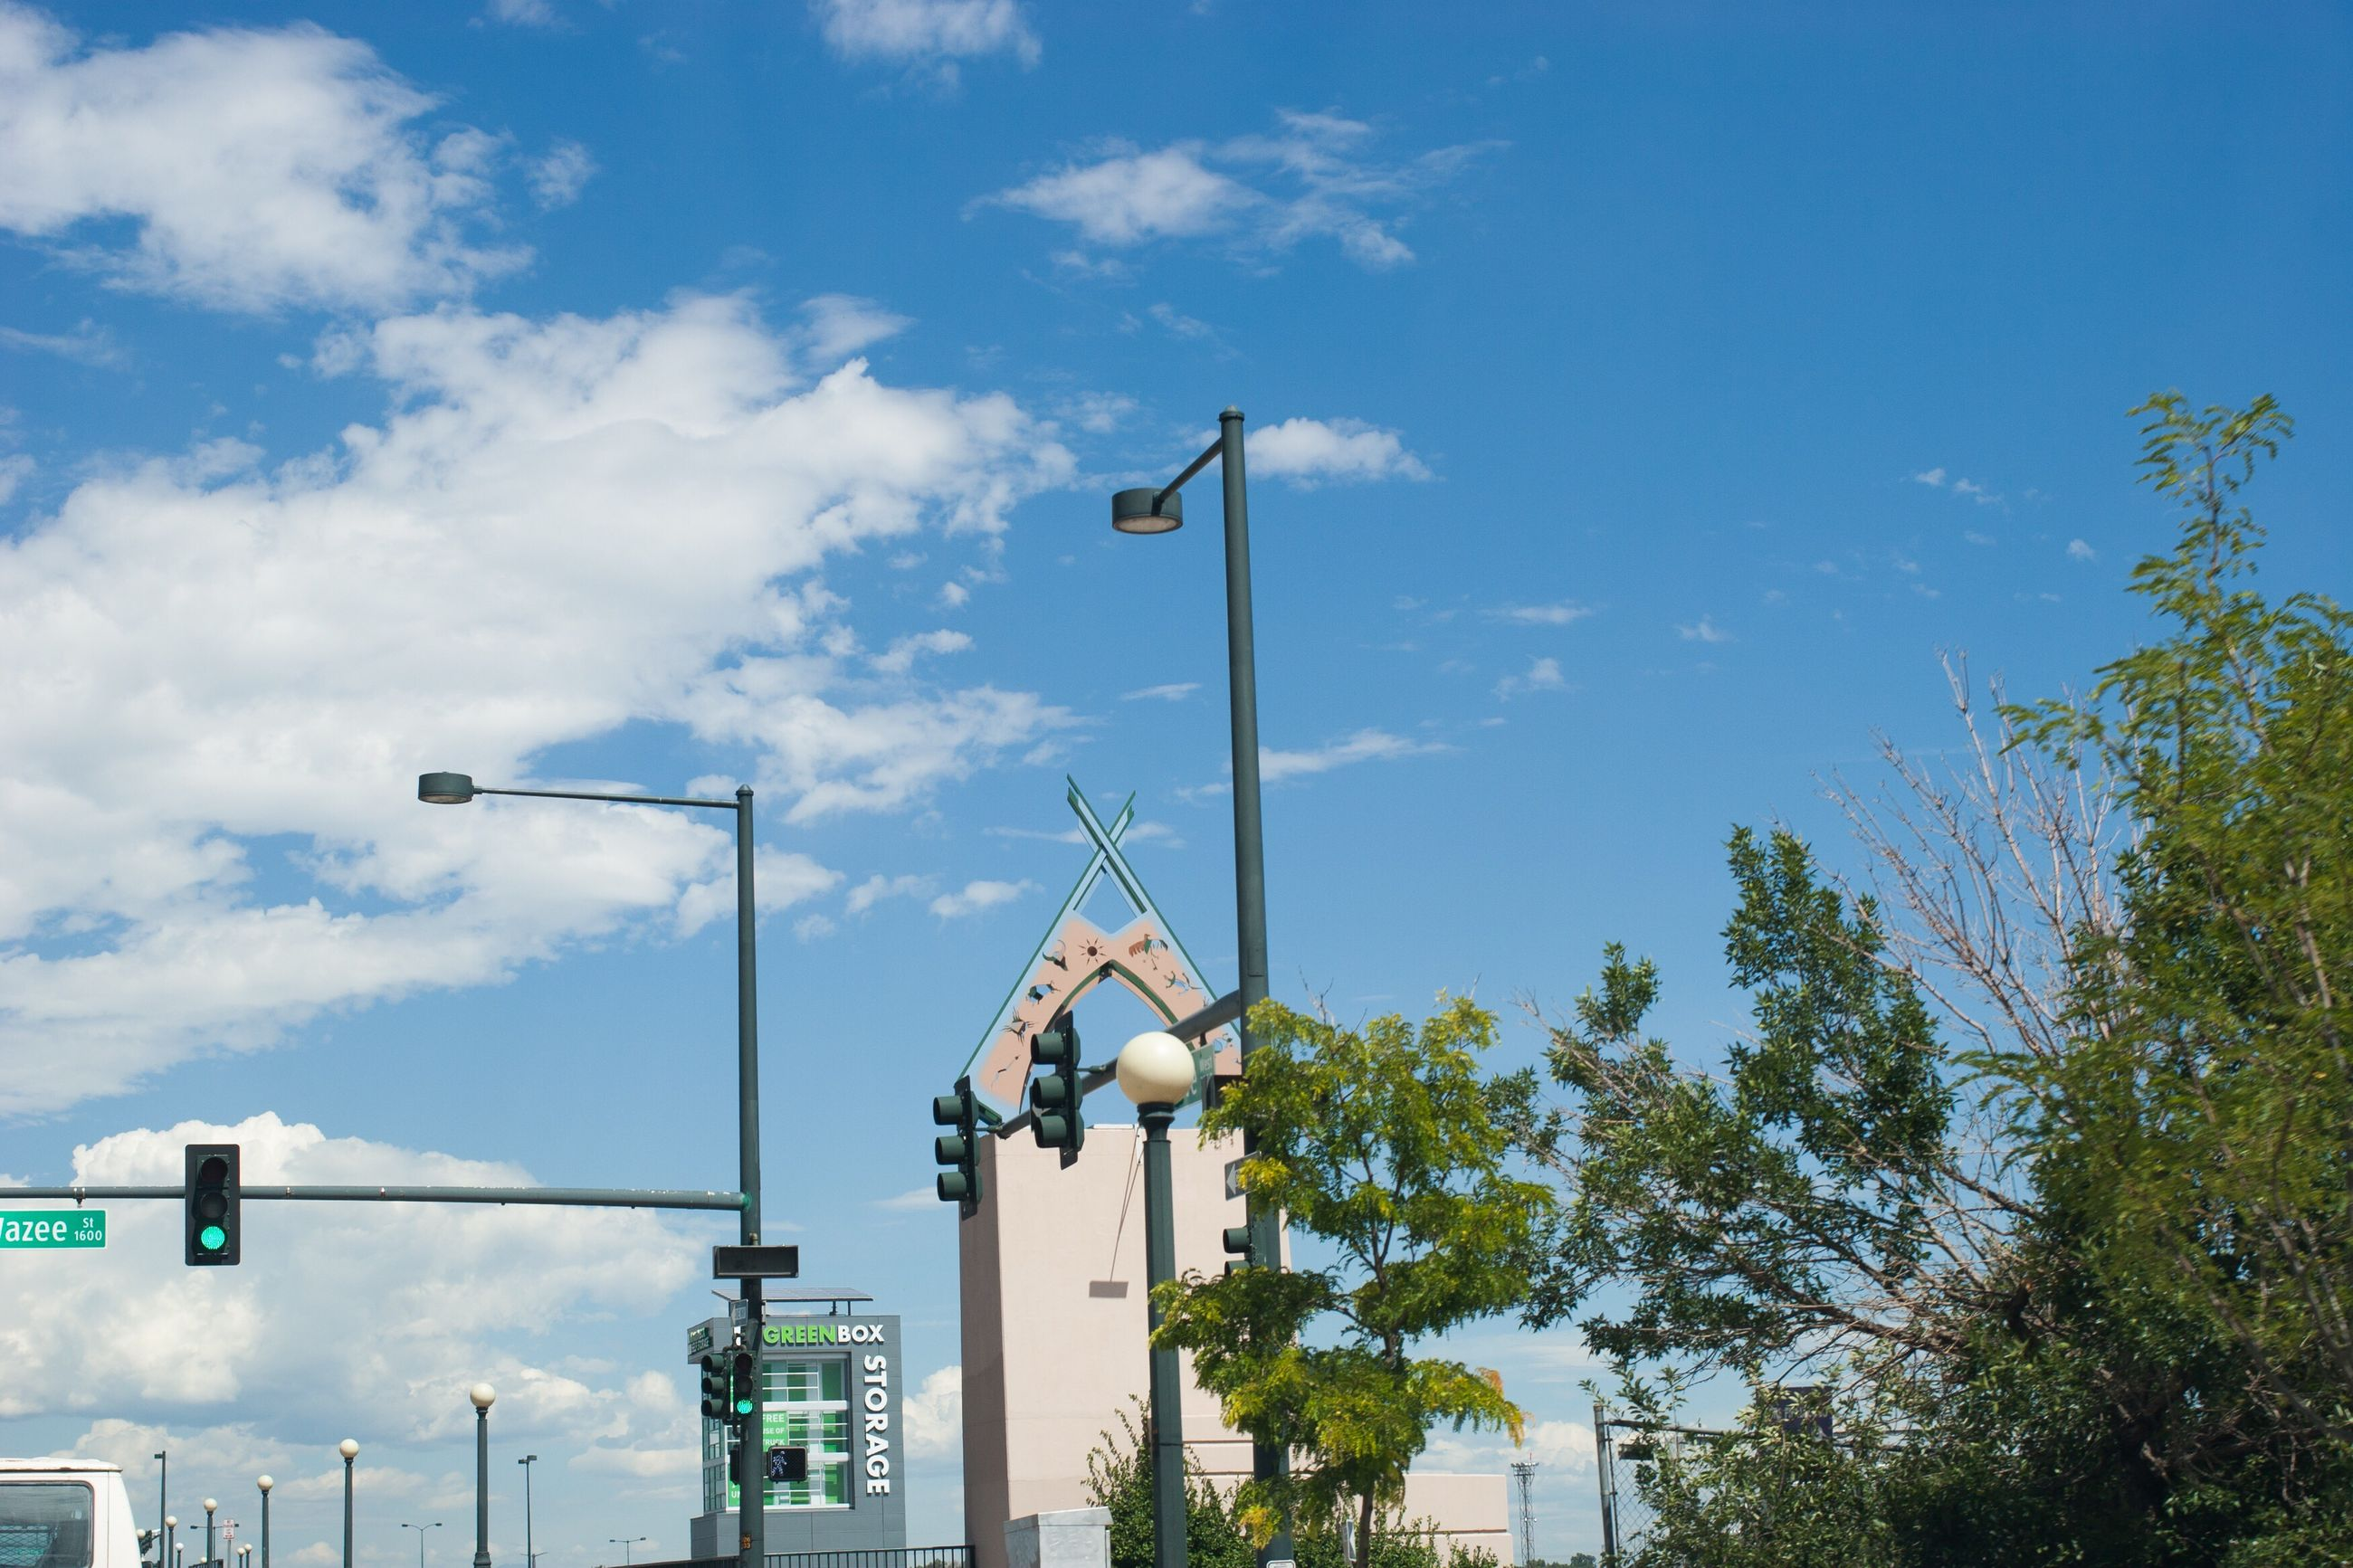 low angle view, sky, street light, cloud - sky, cloud, pole, blue, cloudy, day, outdoors, no people, tall - high, floodlight, high section, nature